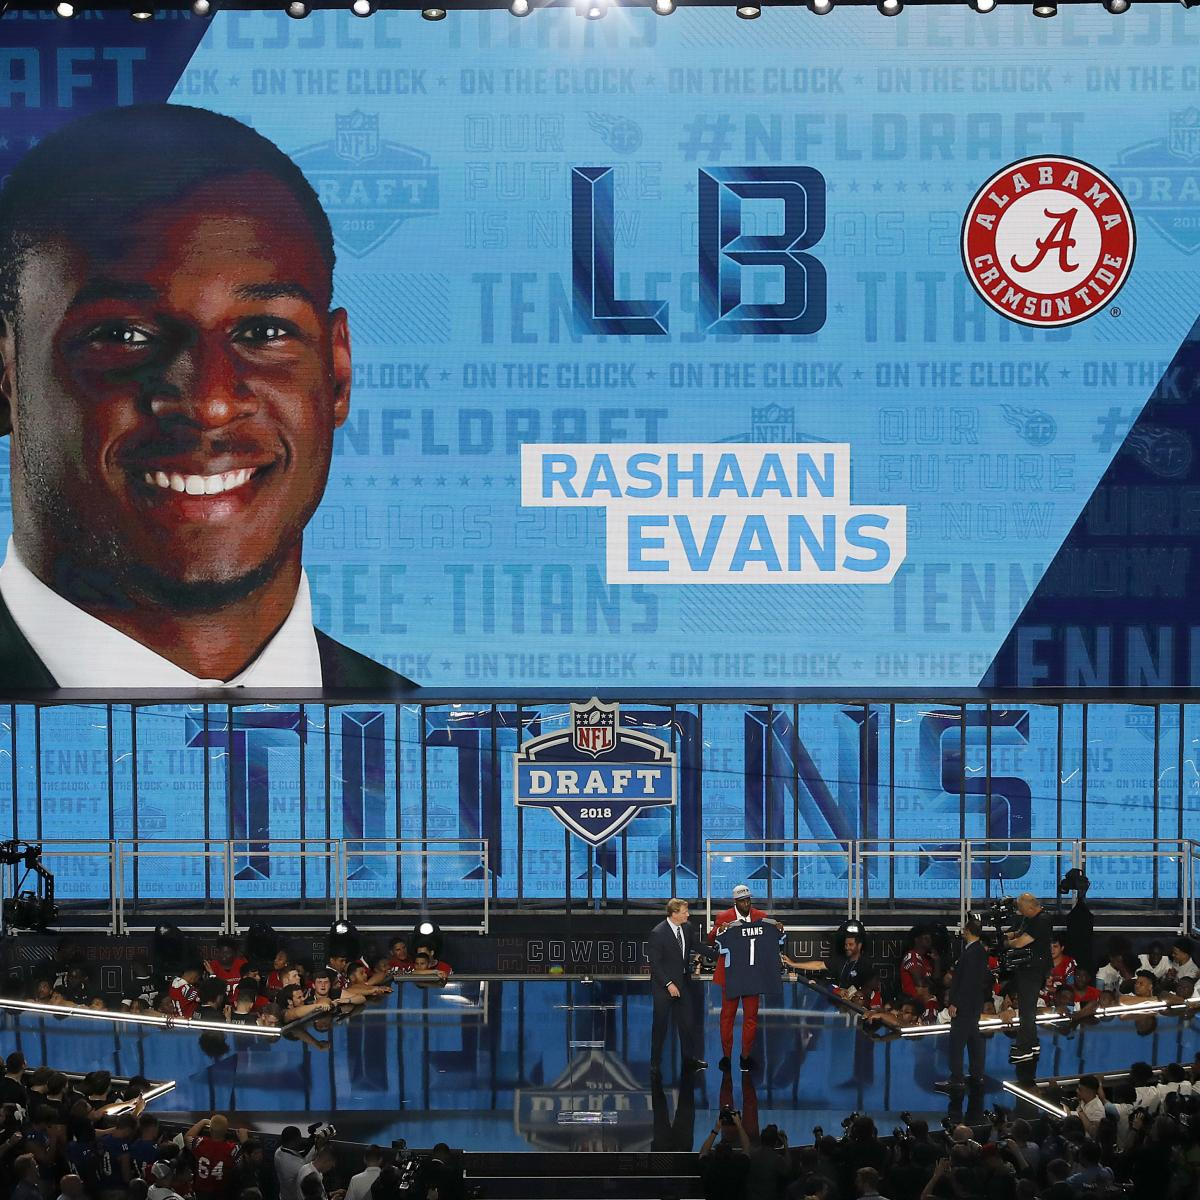 Nissan Cleveland Tn >> Report: 2019 NFL Draft 'Expected' to Be Hosted by Nashville | Bleacher Report | Latest News ...